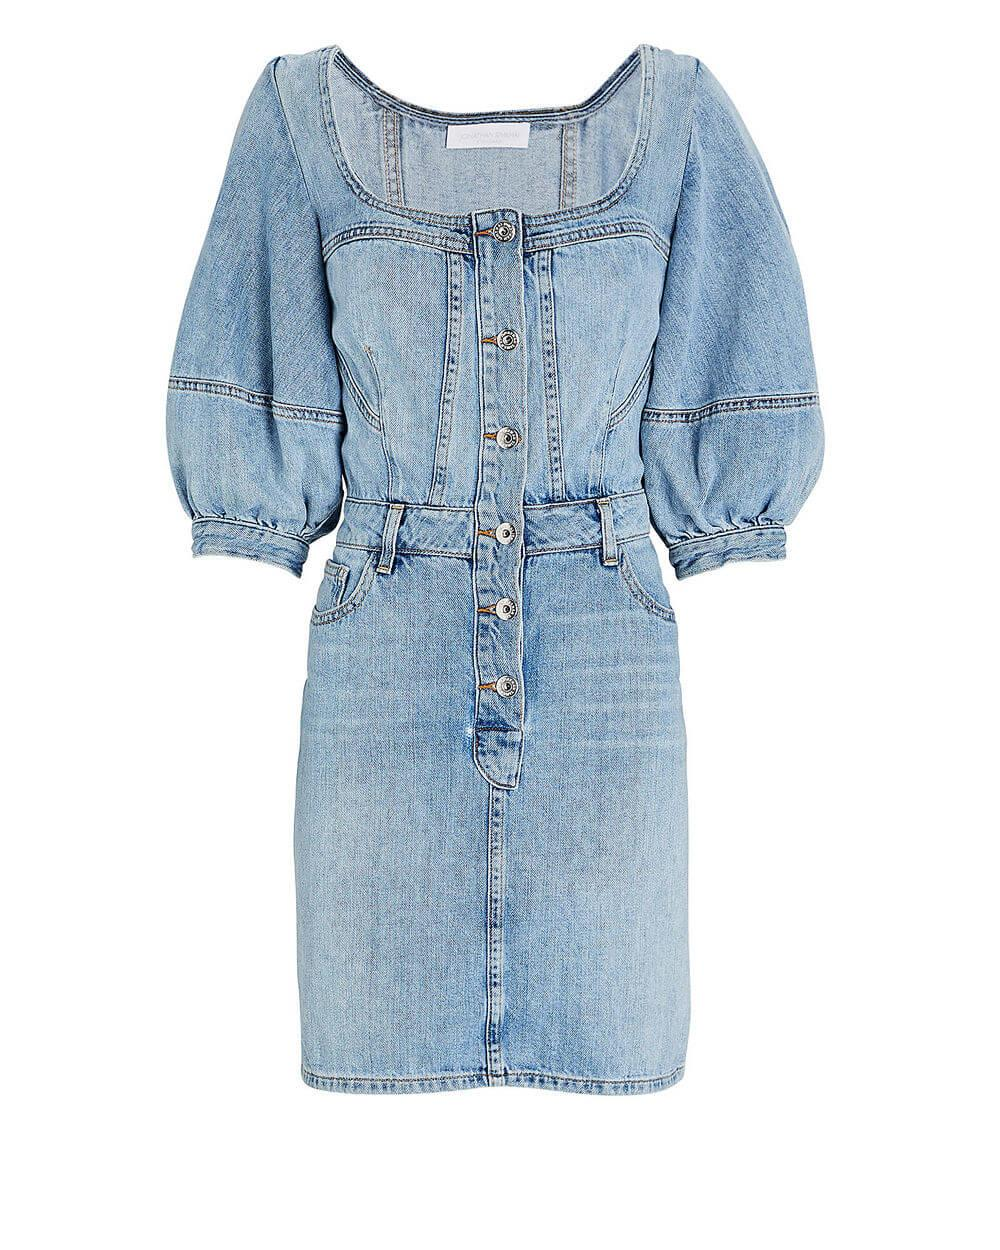 Poppy Puff Sleeve Denim Dress Item # 420-1015-ST